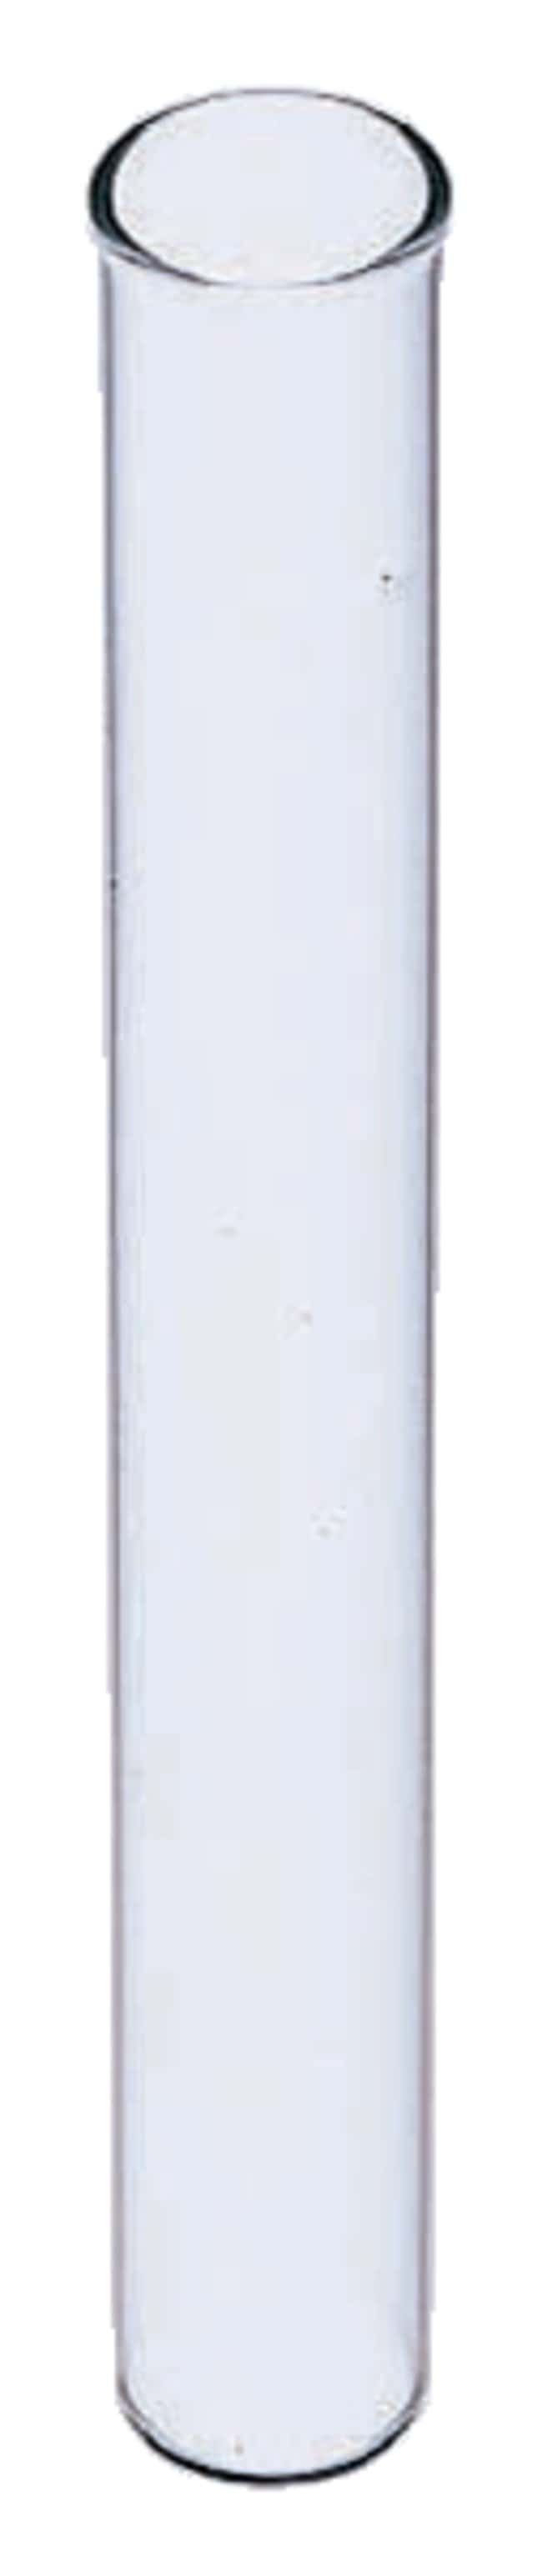 Fisherbrand Disposable Borosilicate Glass Tubes with Plain End  O.D. x